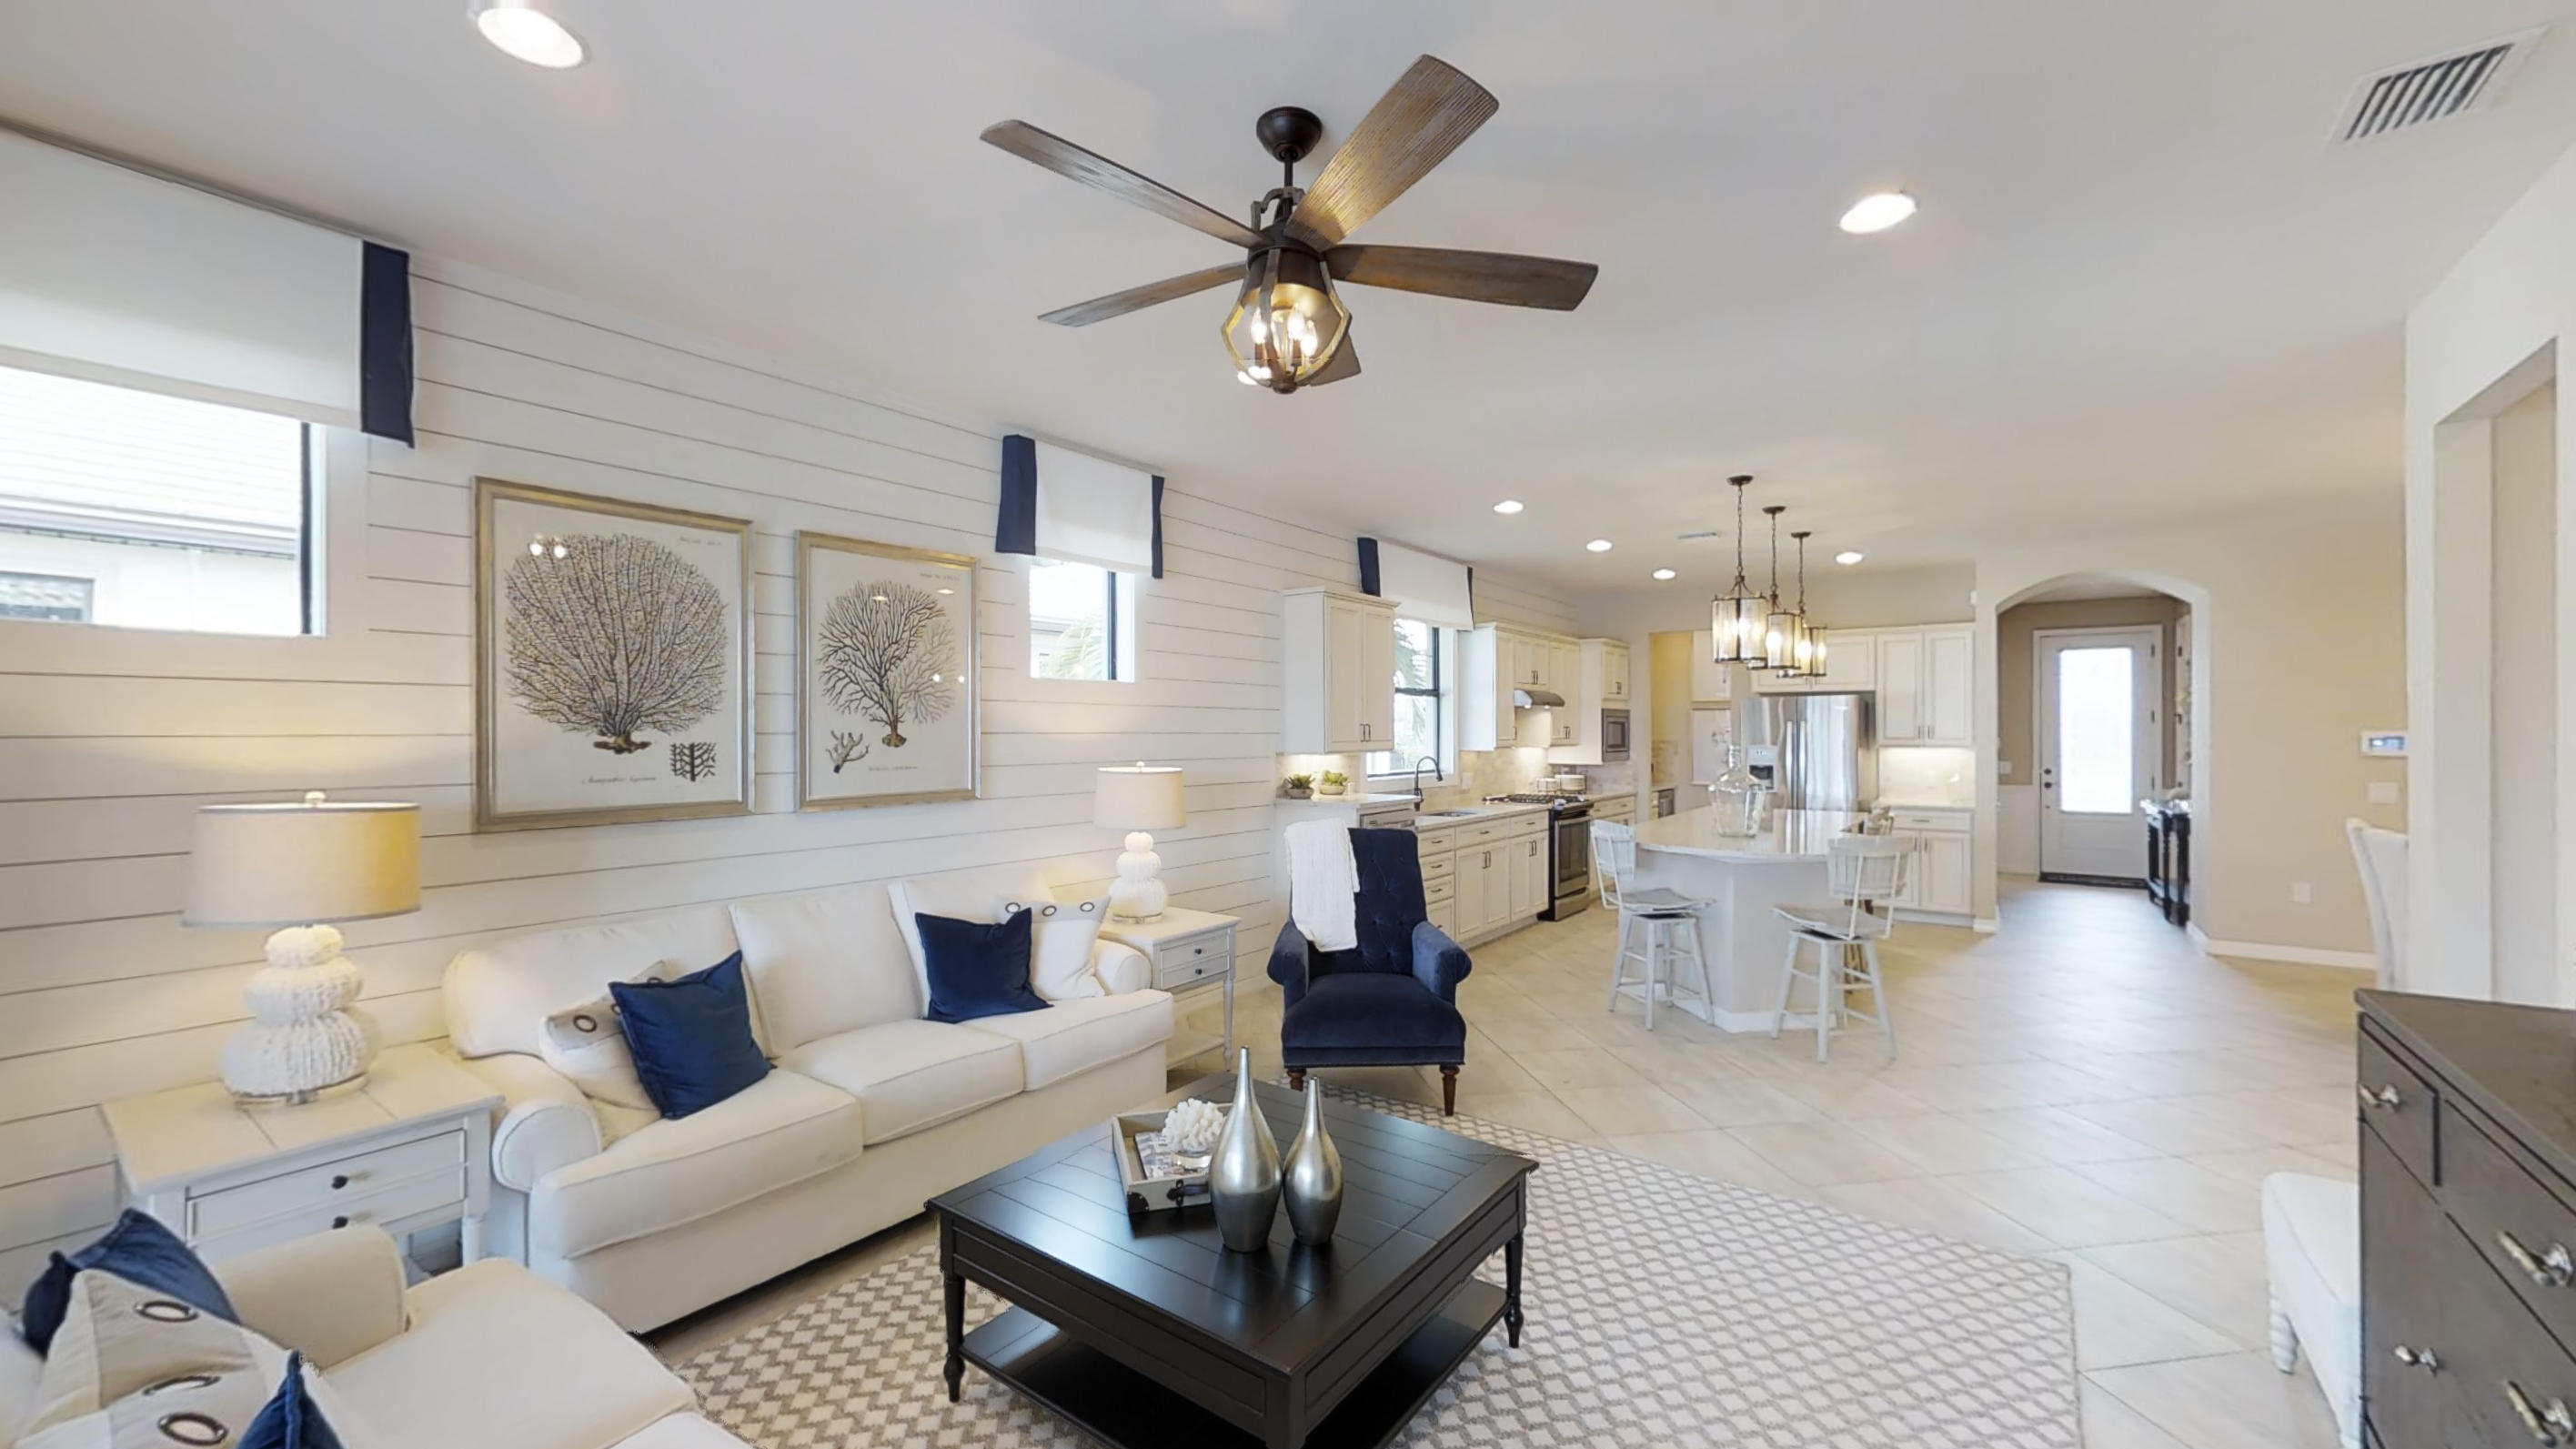 Pulte Homes: Martin Ray